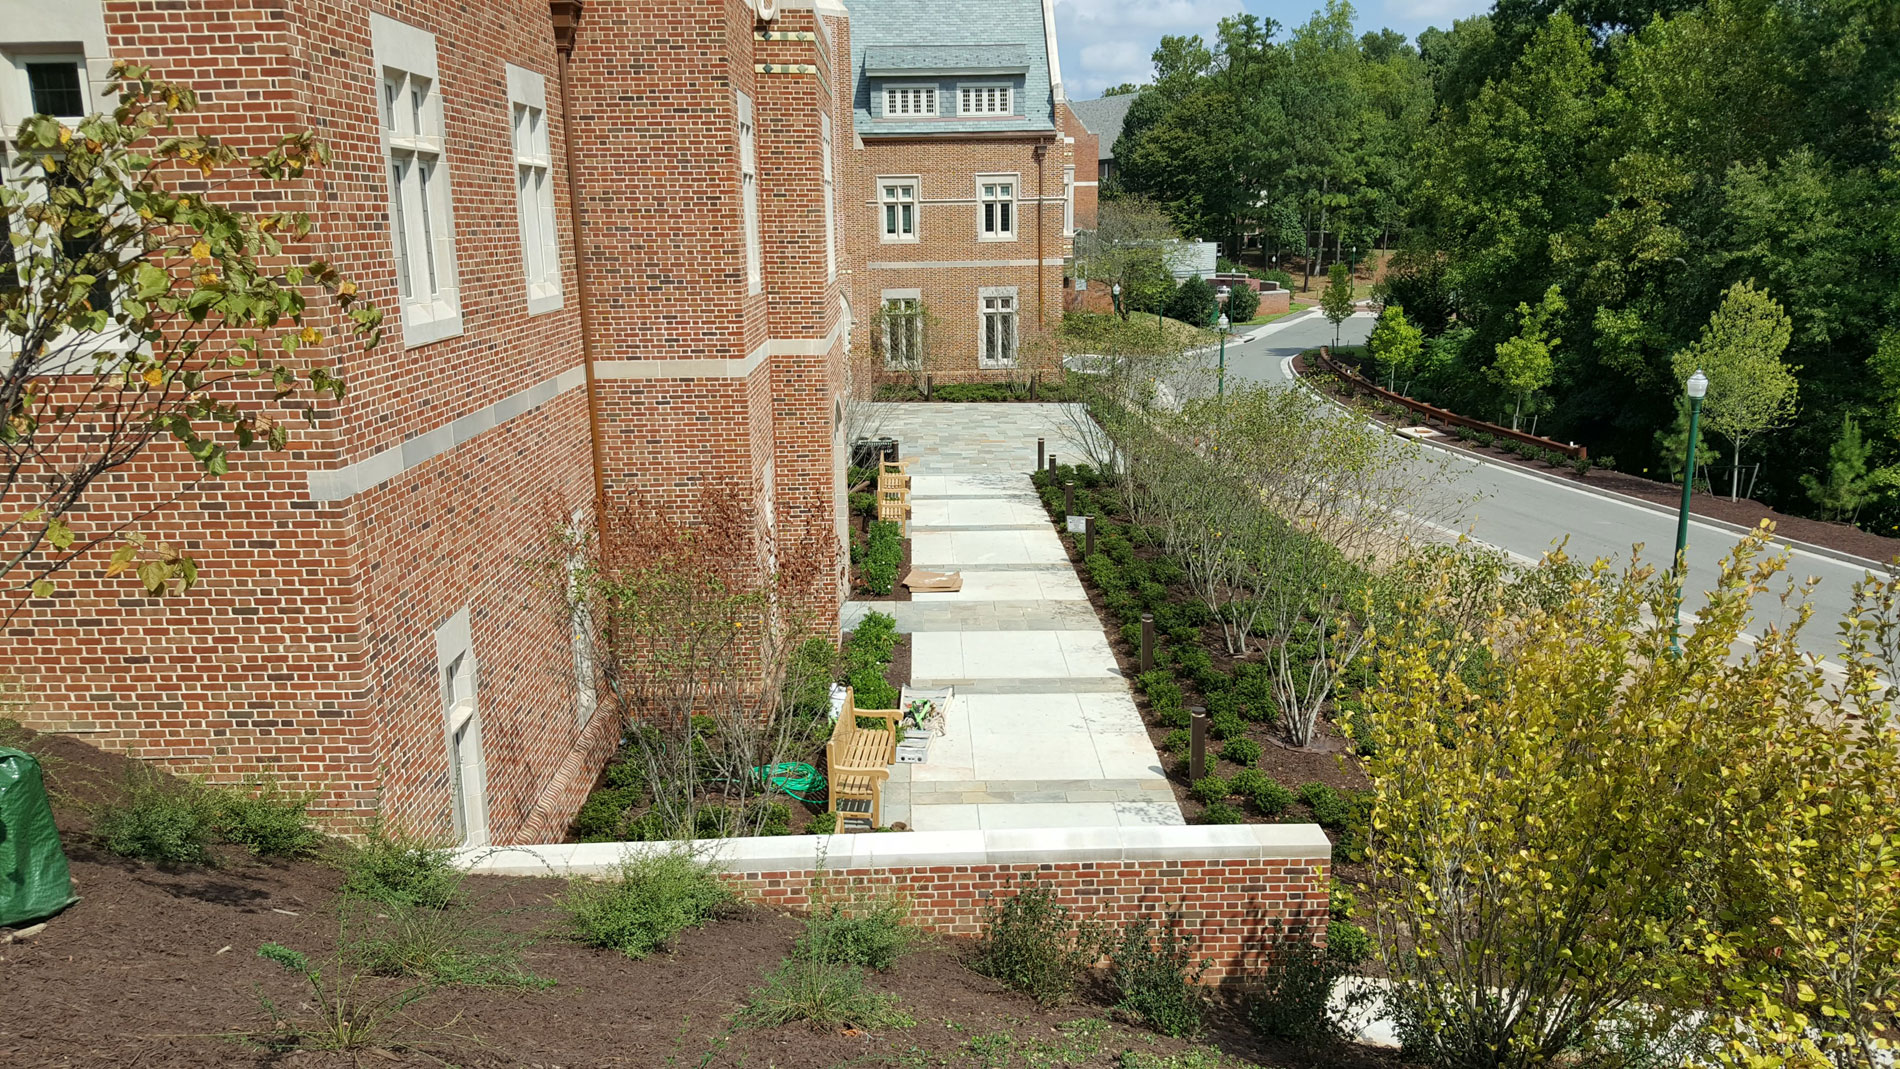 View from the top of the hillside garden showing the Amelanchier-lined walkway to the entry plaza.